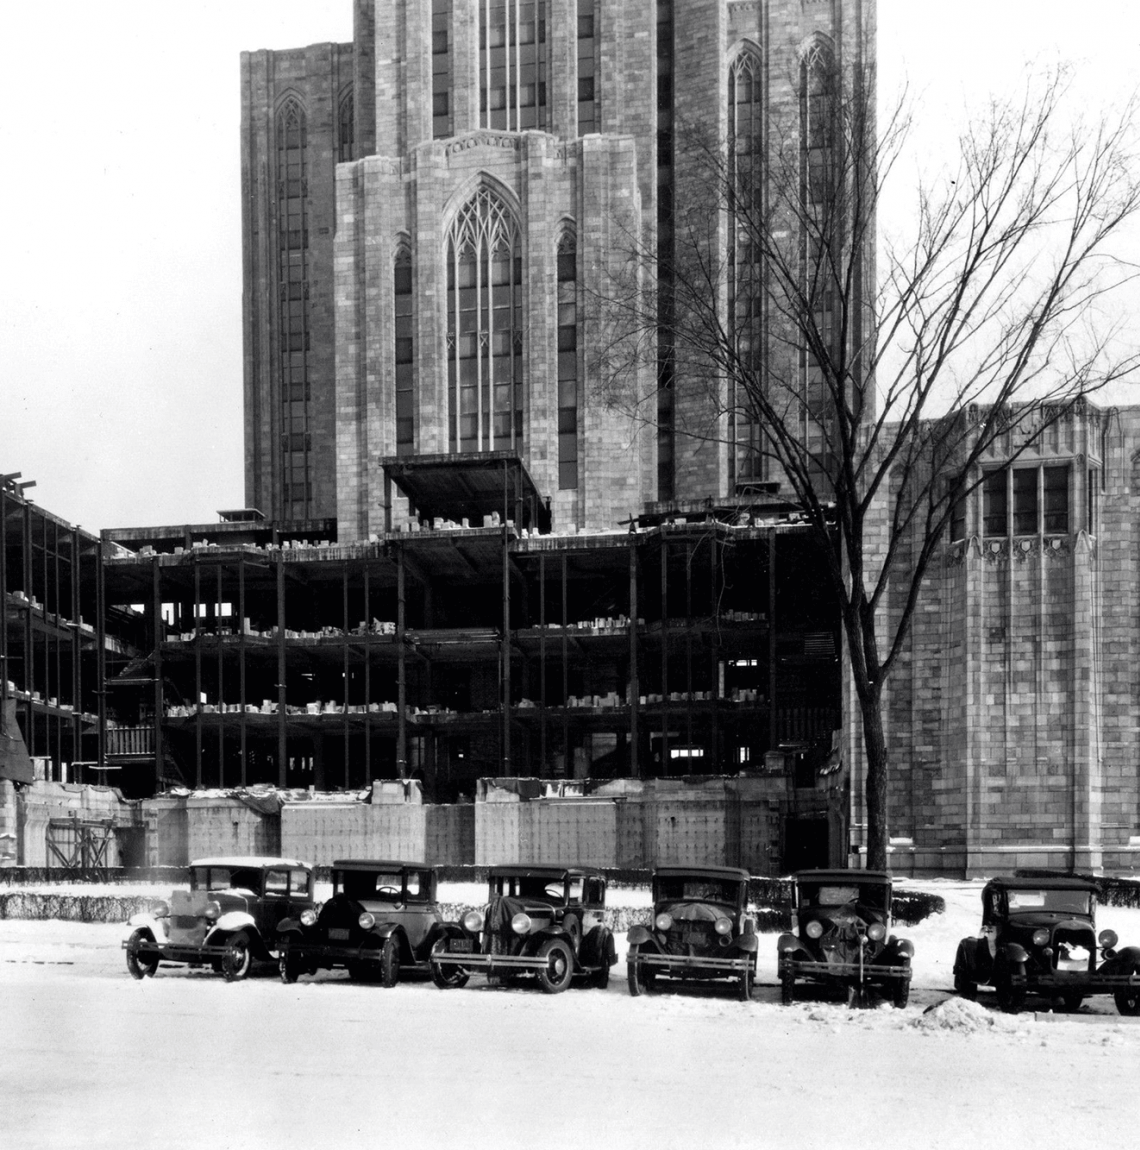 black and white photo of Cathedral with side under construction, old cars lined up in snow in front of it